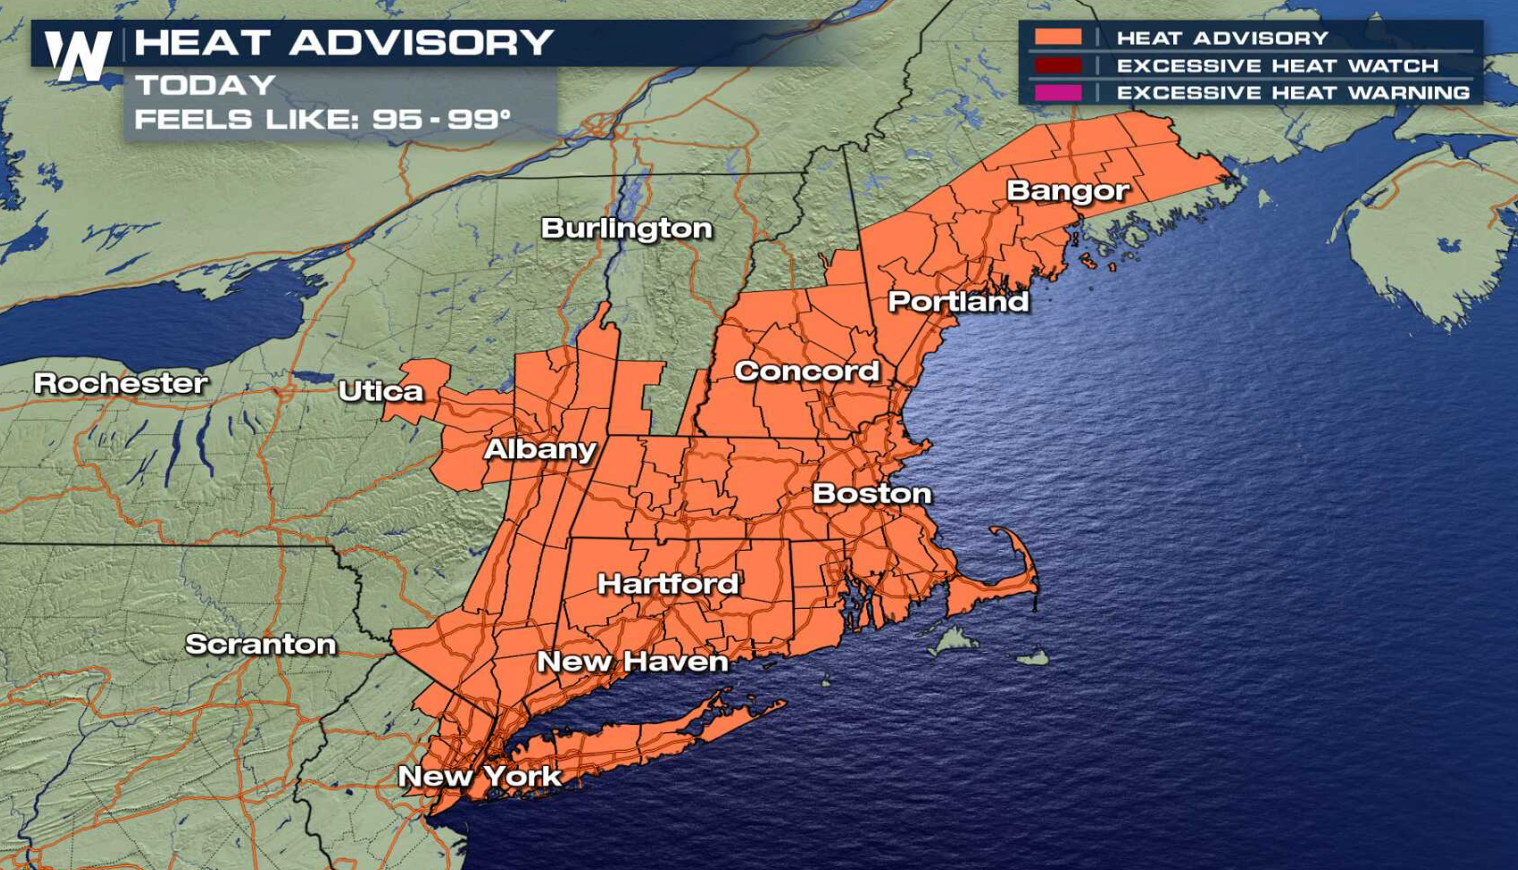 Heat Advisories Issued in the Northeast and Southeast